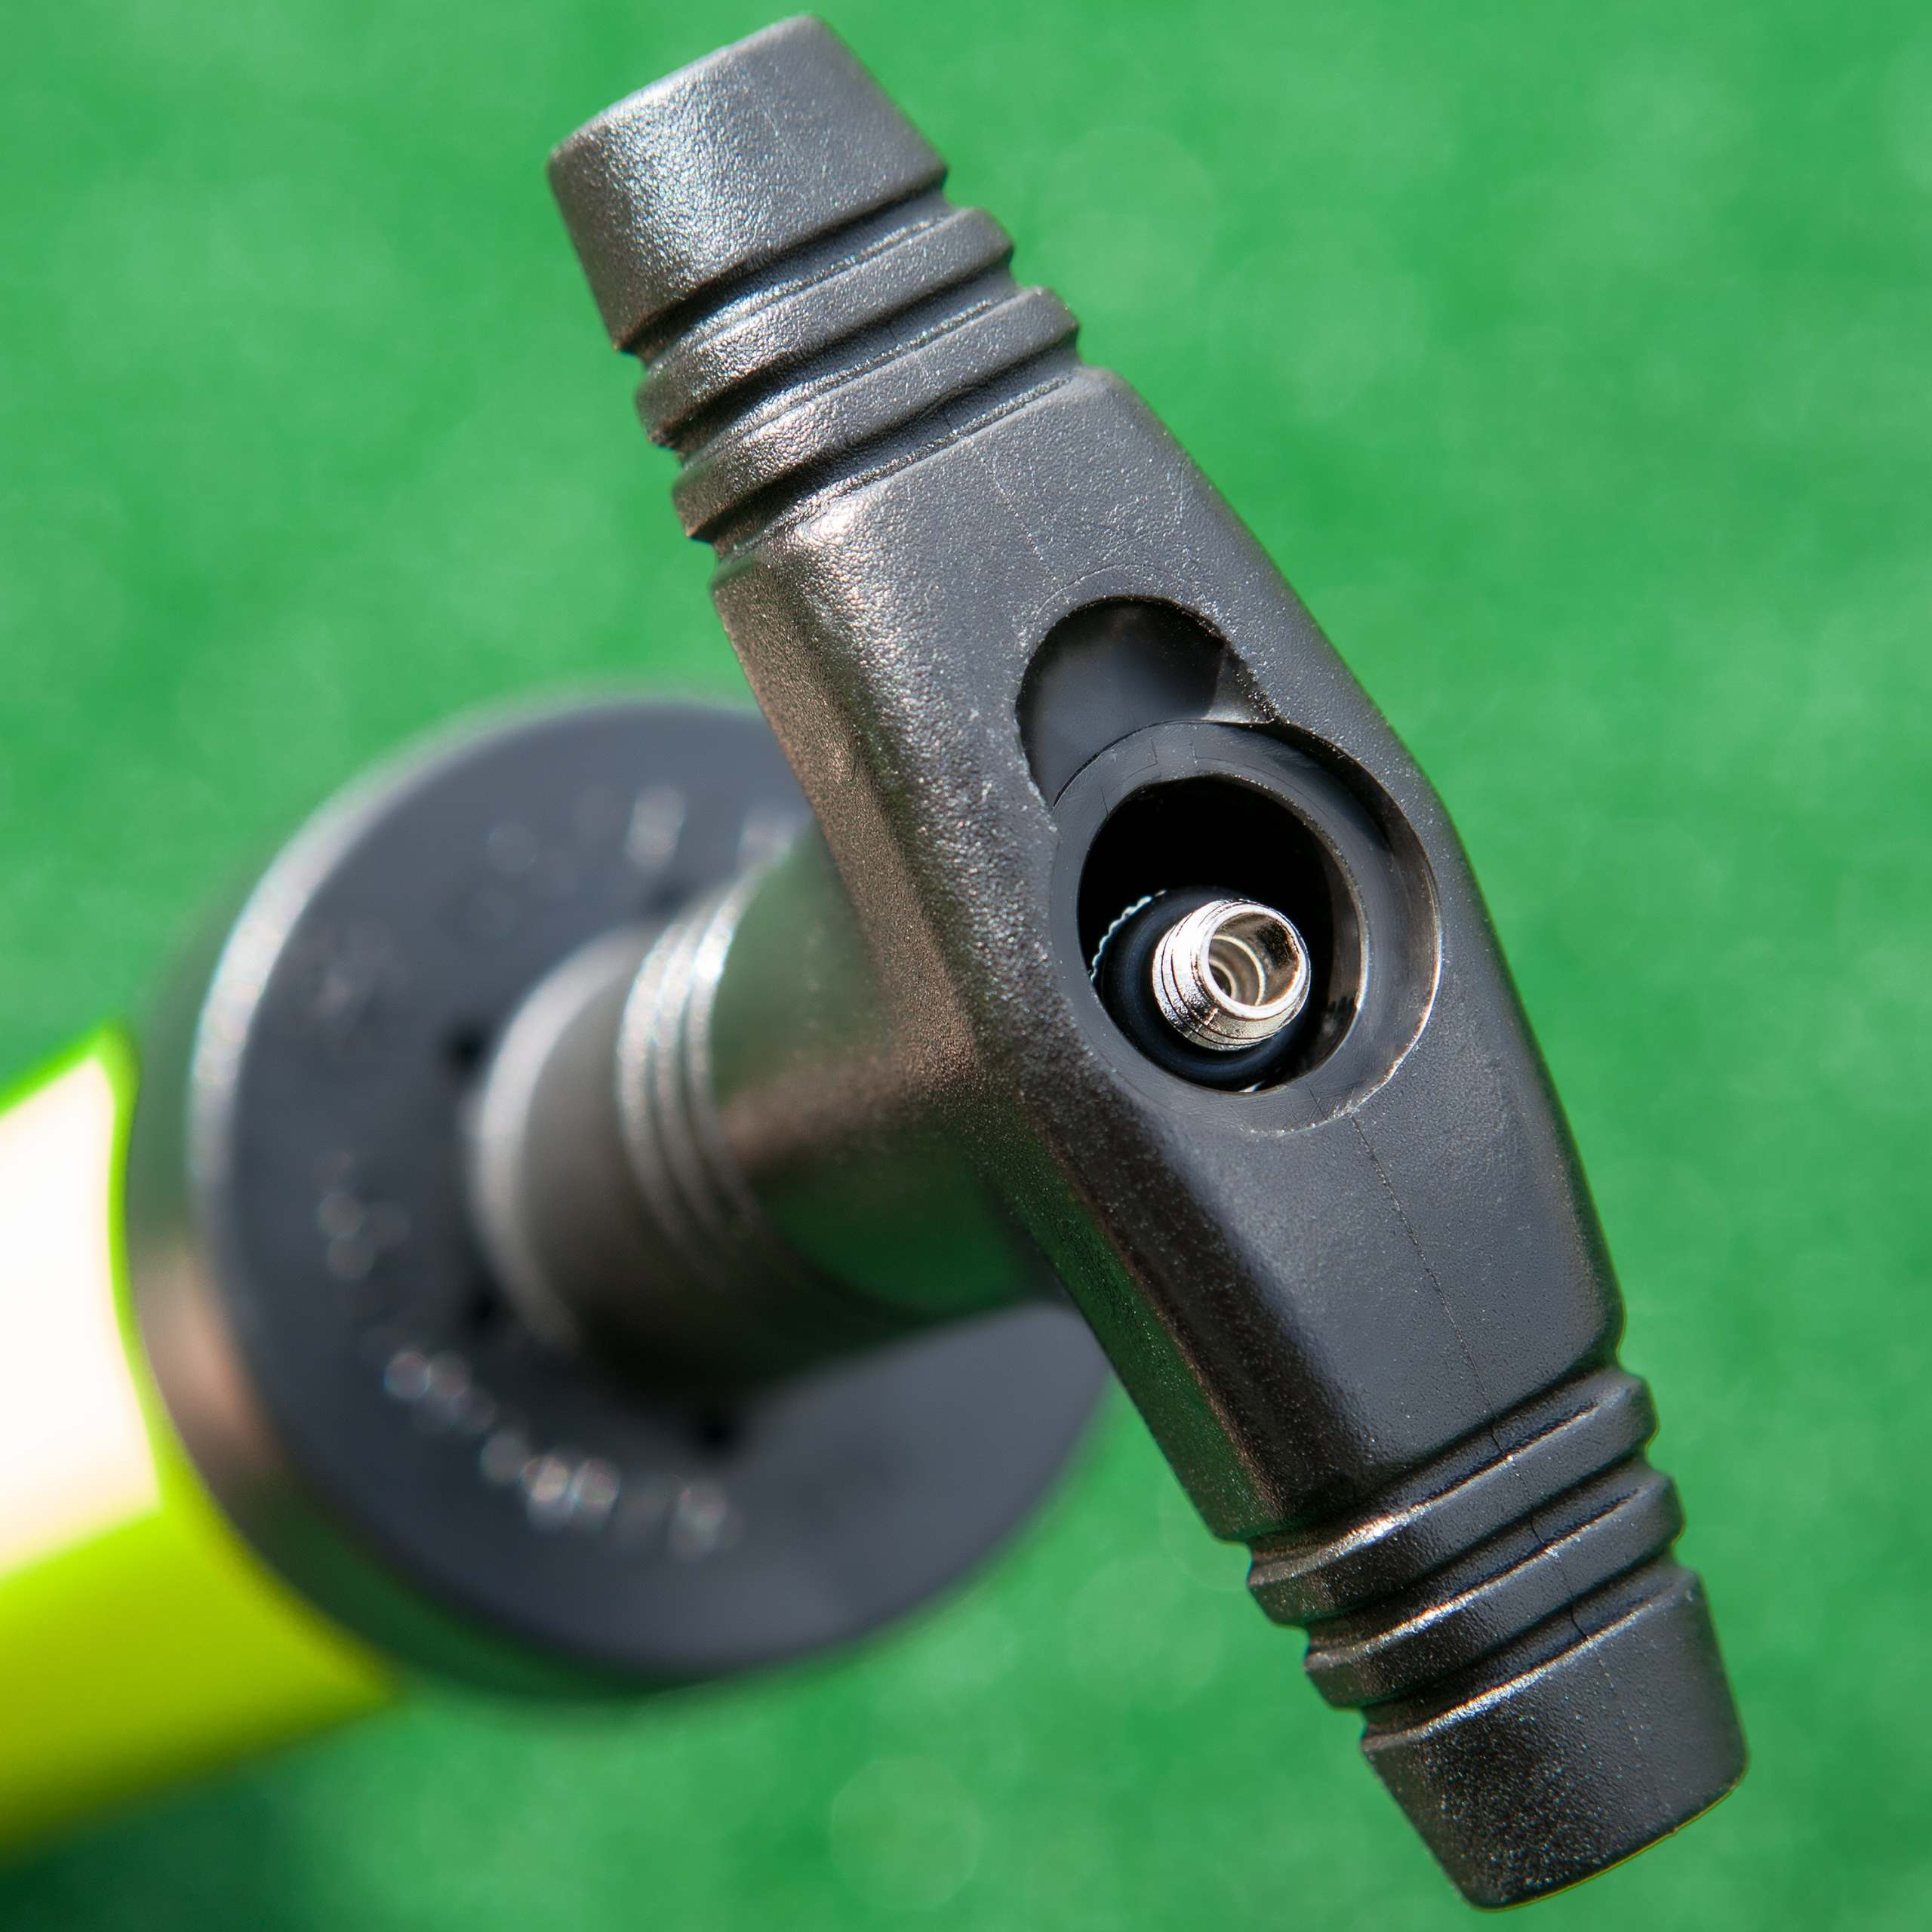 FORZA Pump That Ball™ Smart Needle Storage | Soccer Ball Pump And Needle